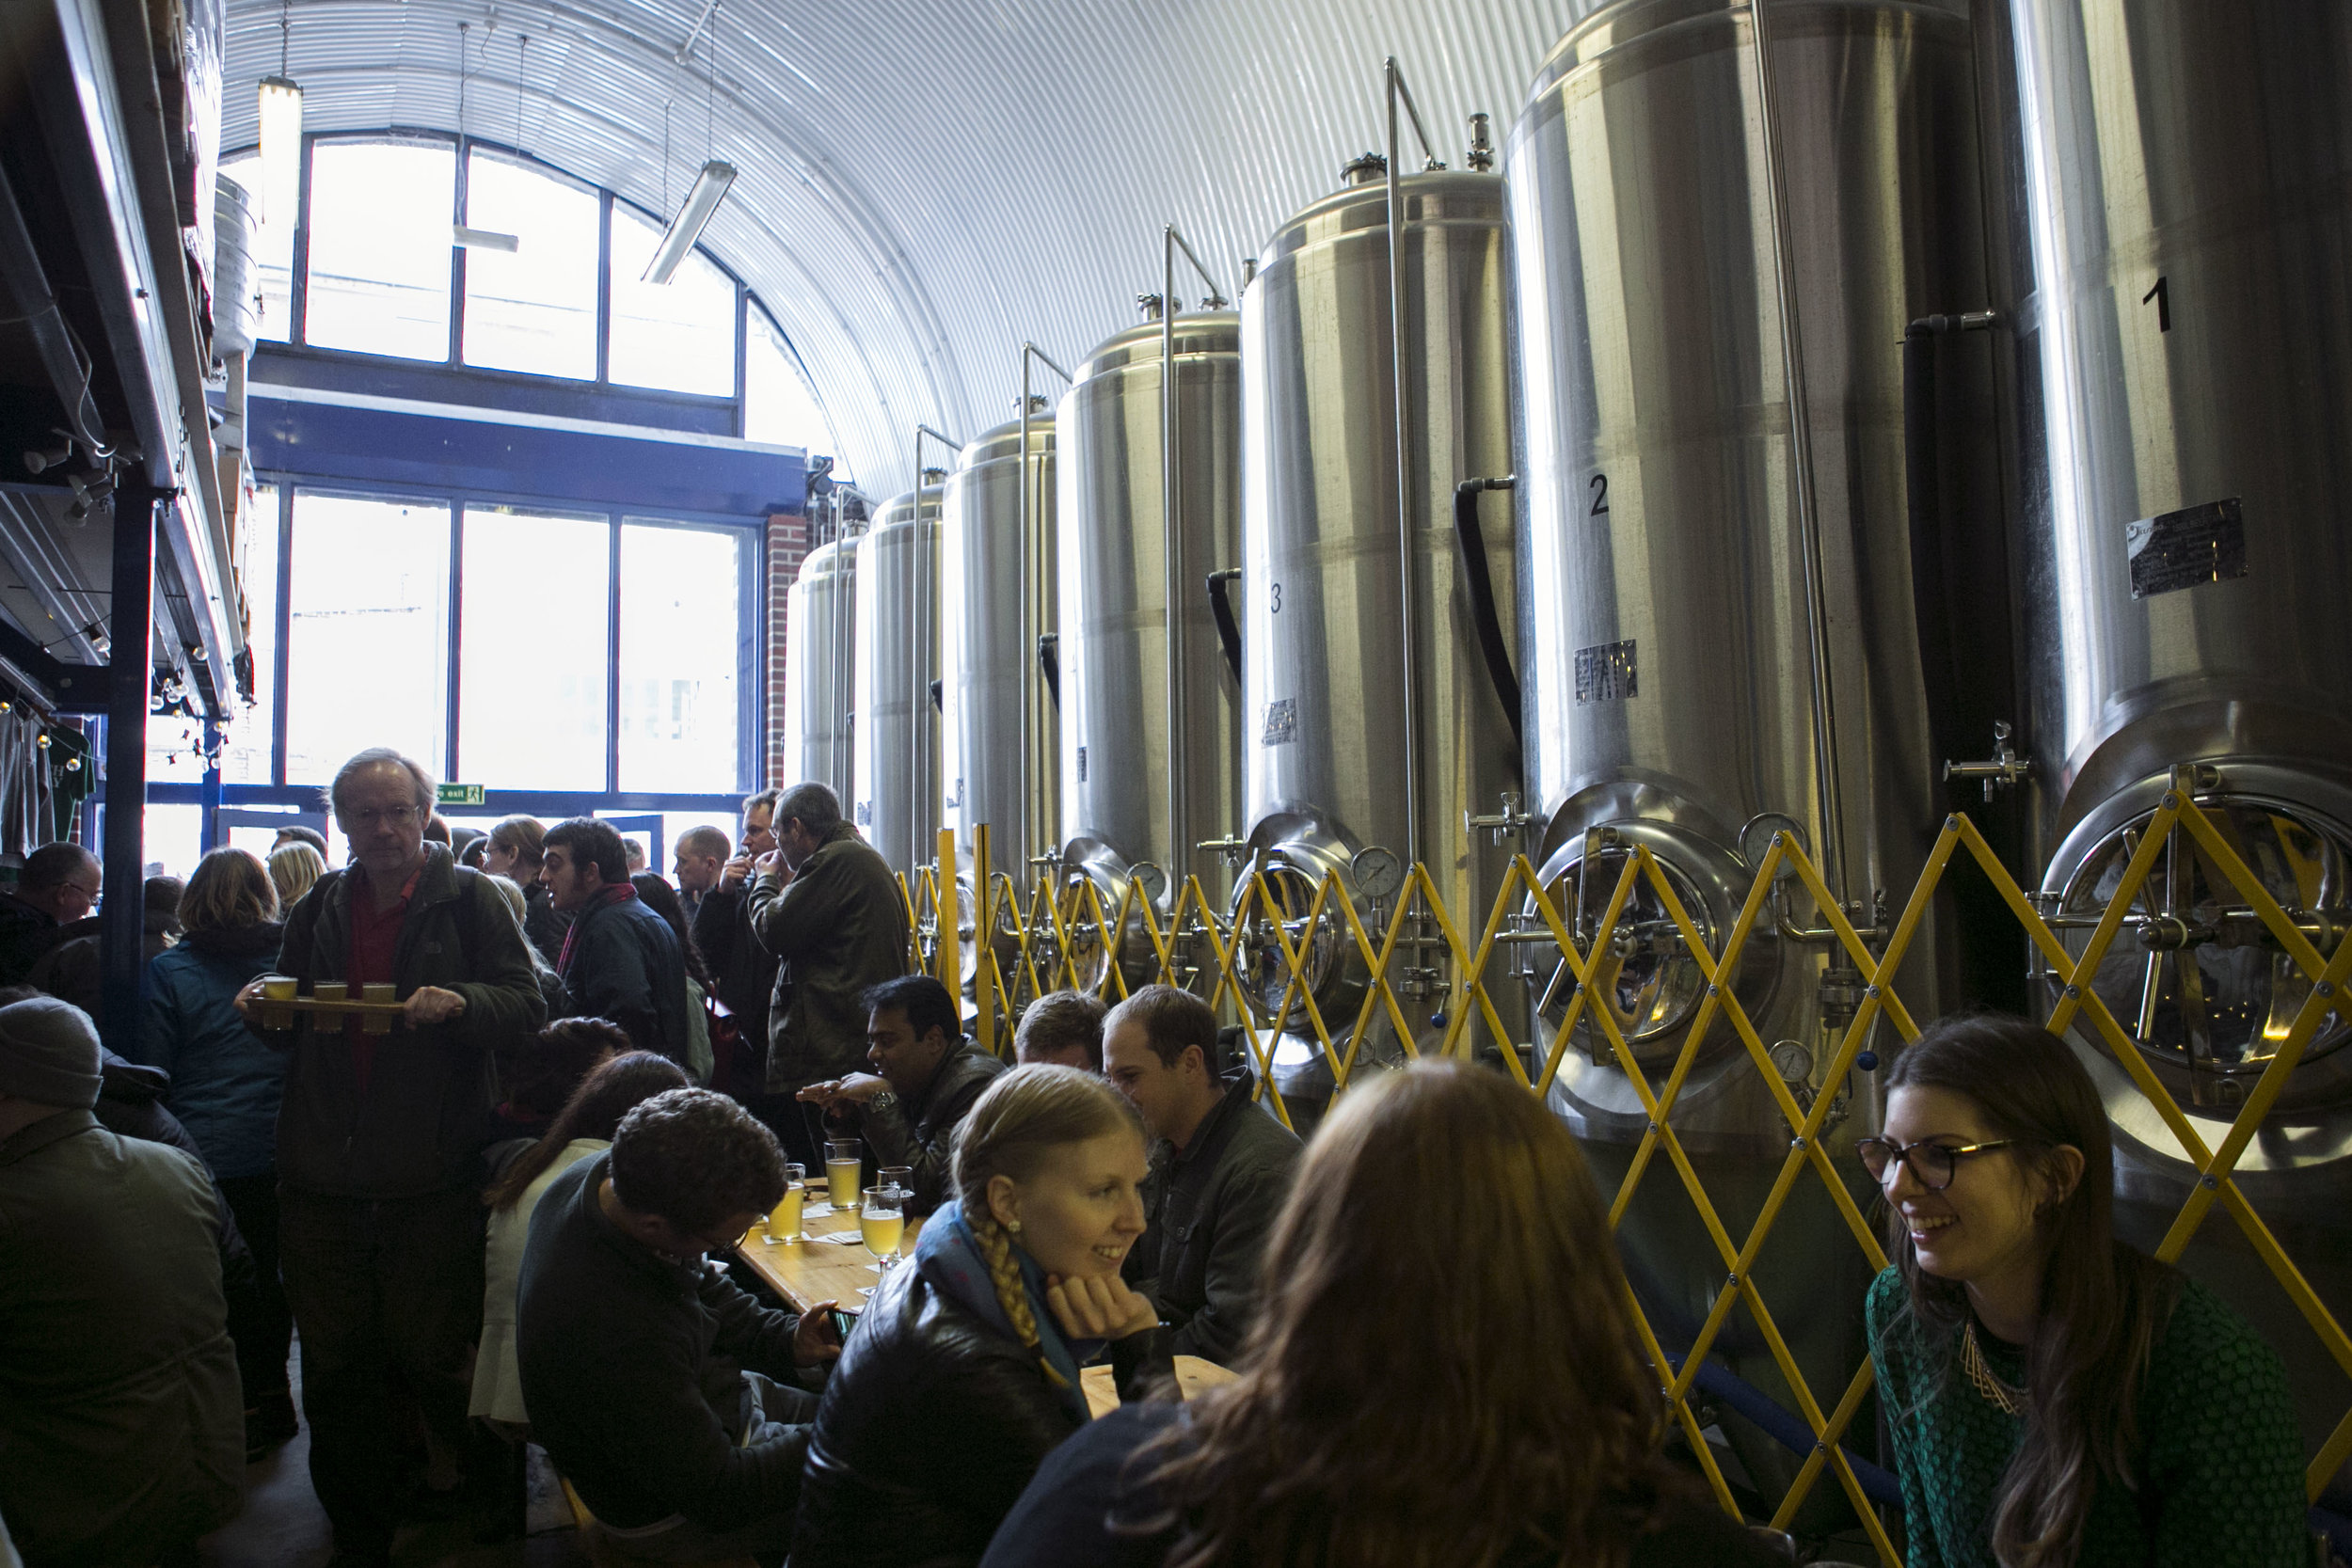 London Brewery Tours Brewery Tours in London South East London Club Card 9.jpg